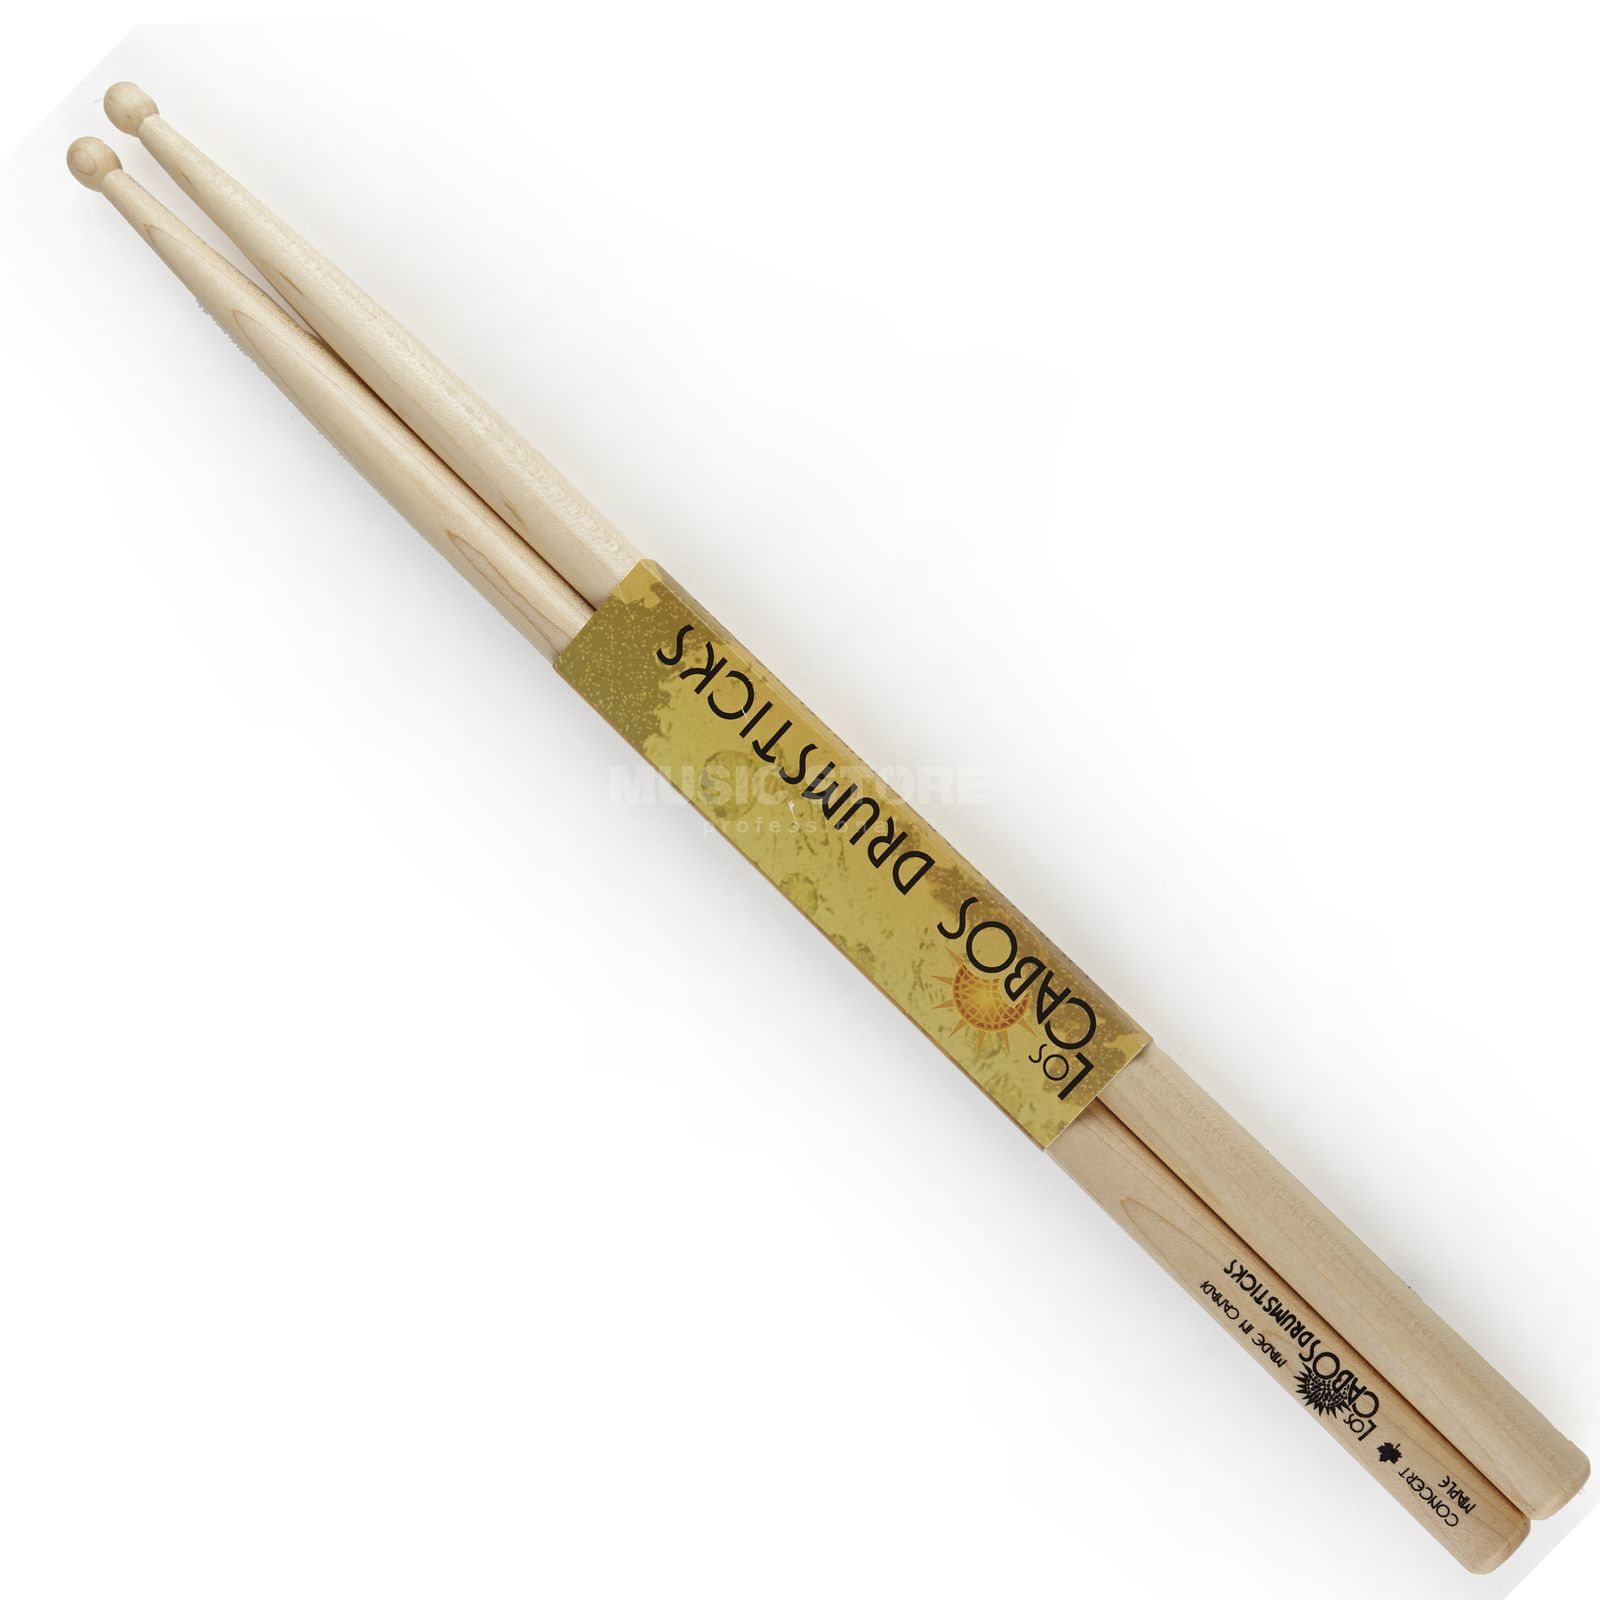 Los Cabos Concert Maple Sticks, Wood Tip Produktbillede